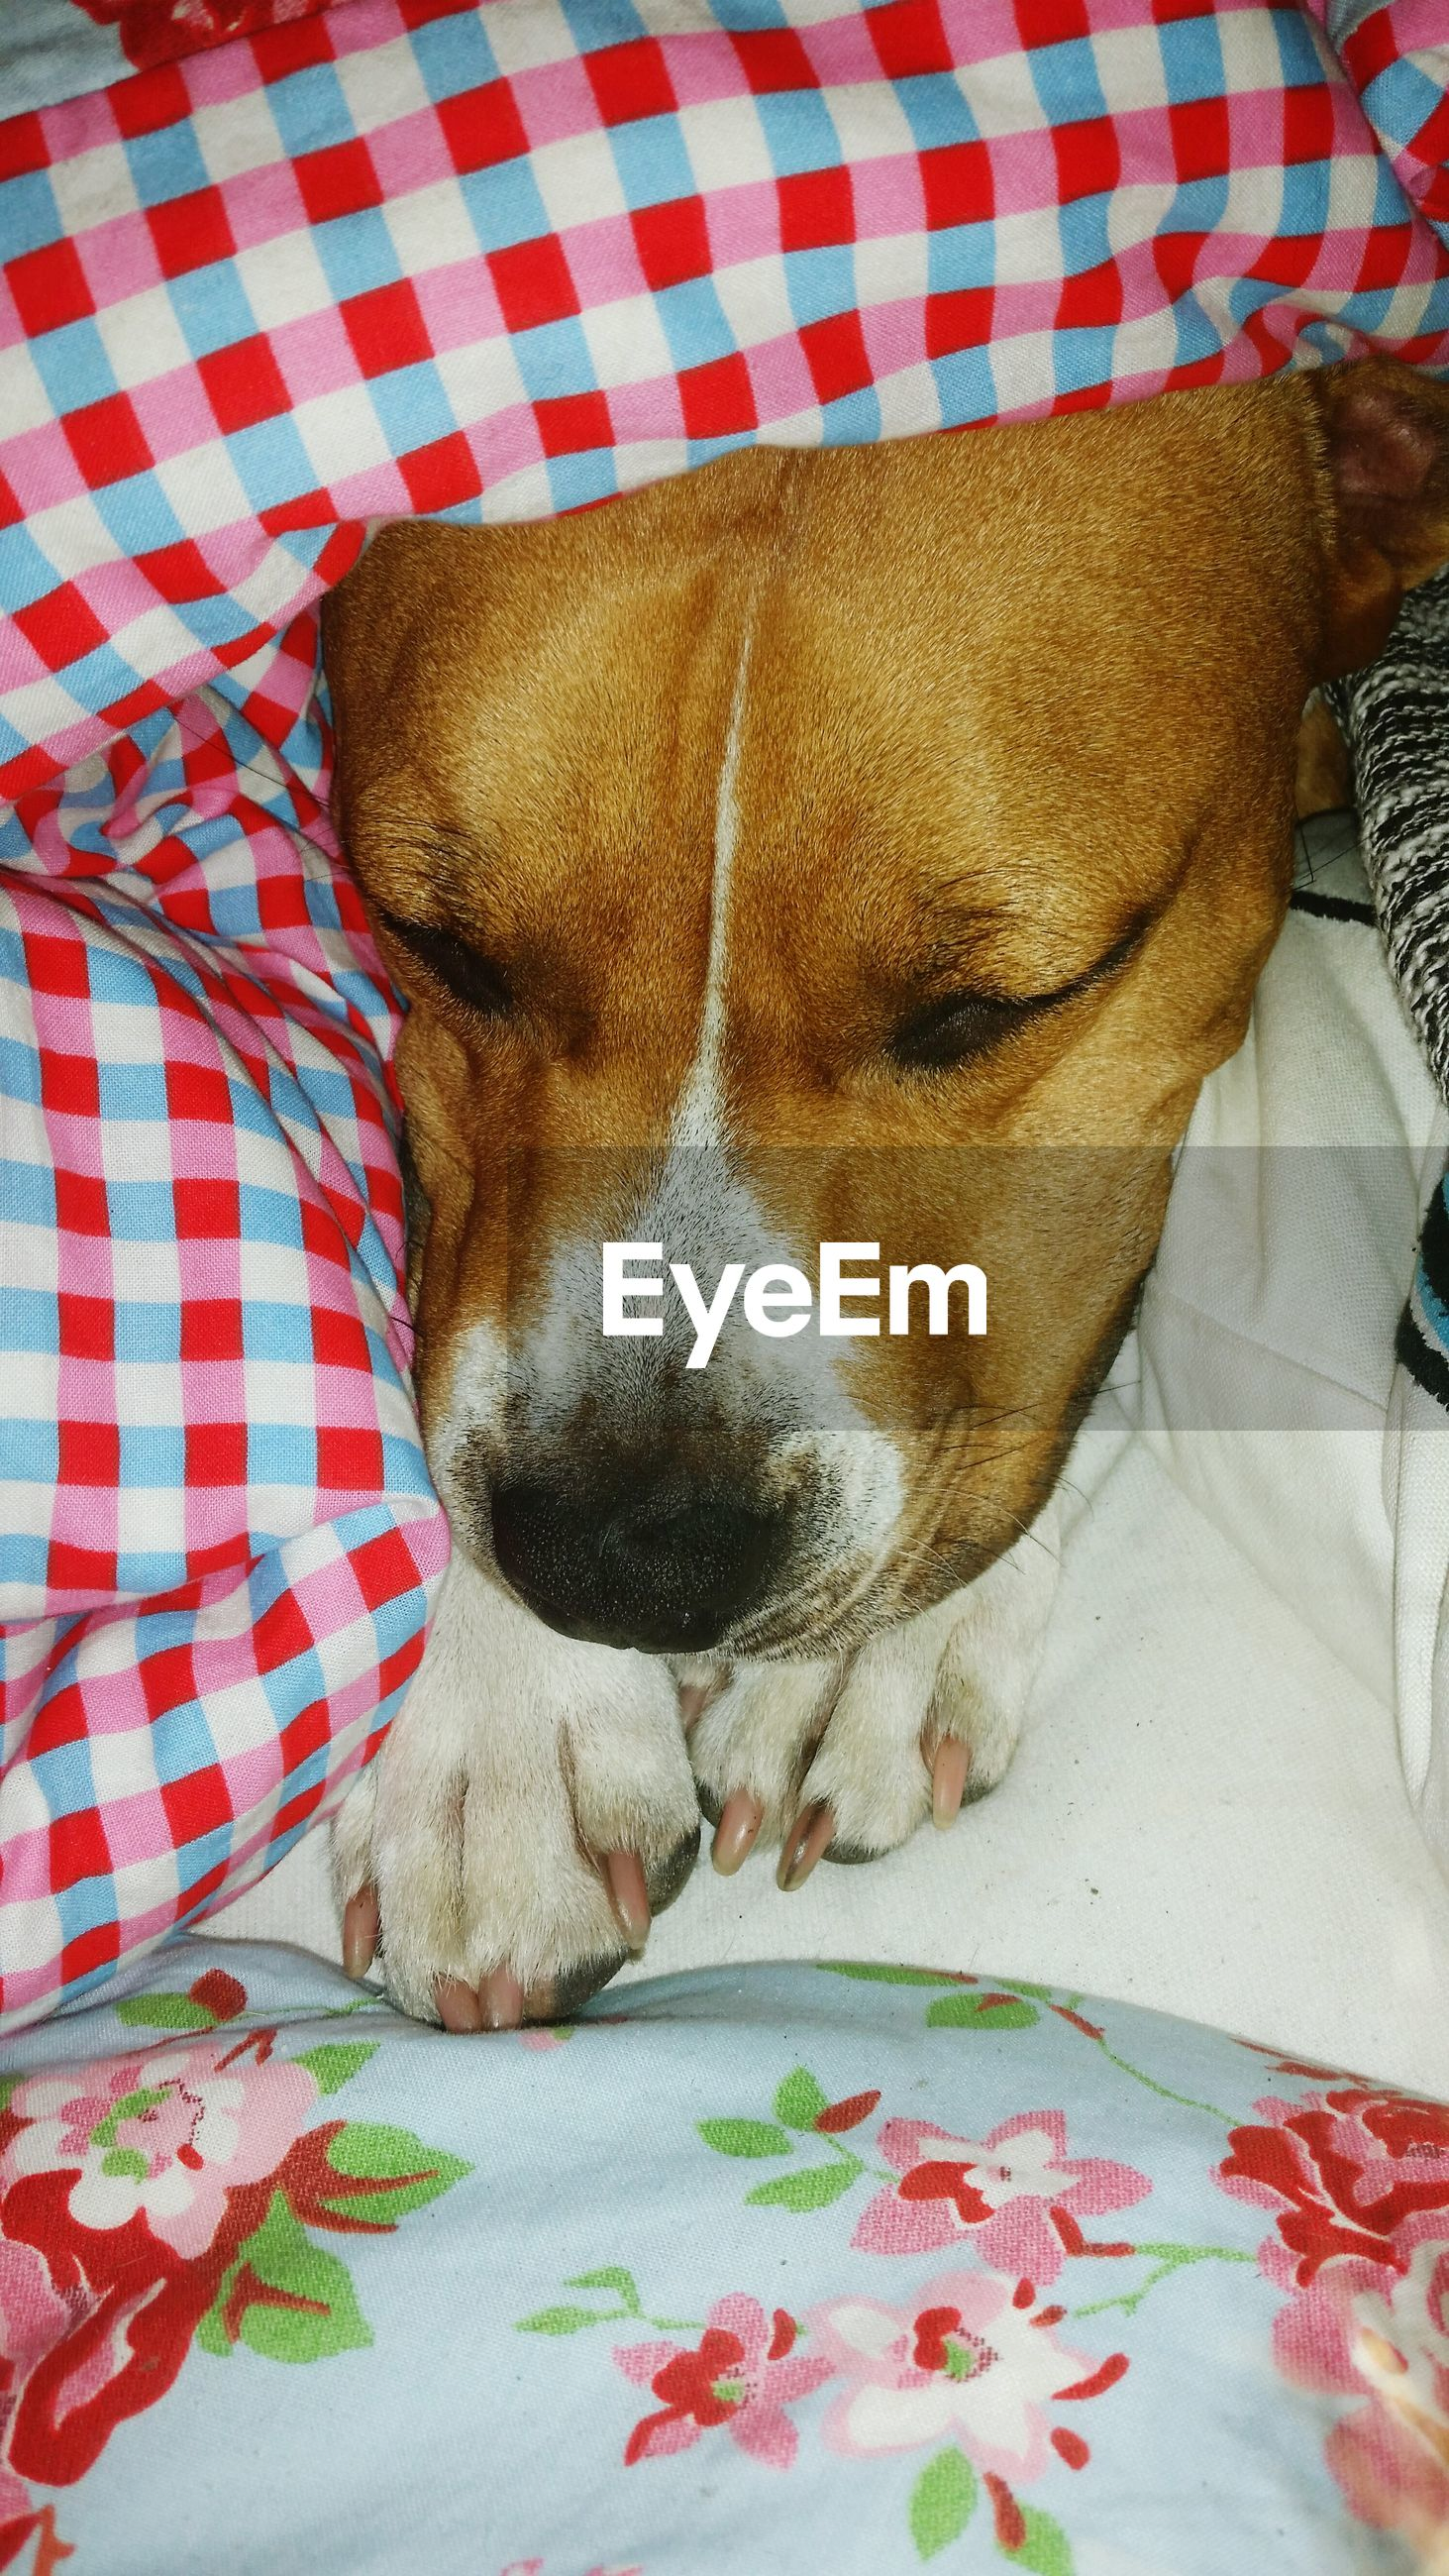 indoors, domestic animals, dog, bed, one animal, animal themes, pets, relaxation, sleeping, mammal, lying down, resting, high angle view, close-up, blanket, home interior, fabric, eyes closed, animal head, pillow